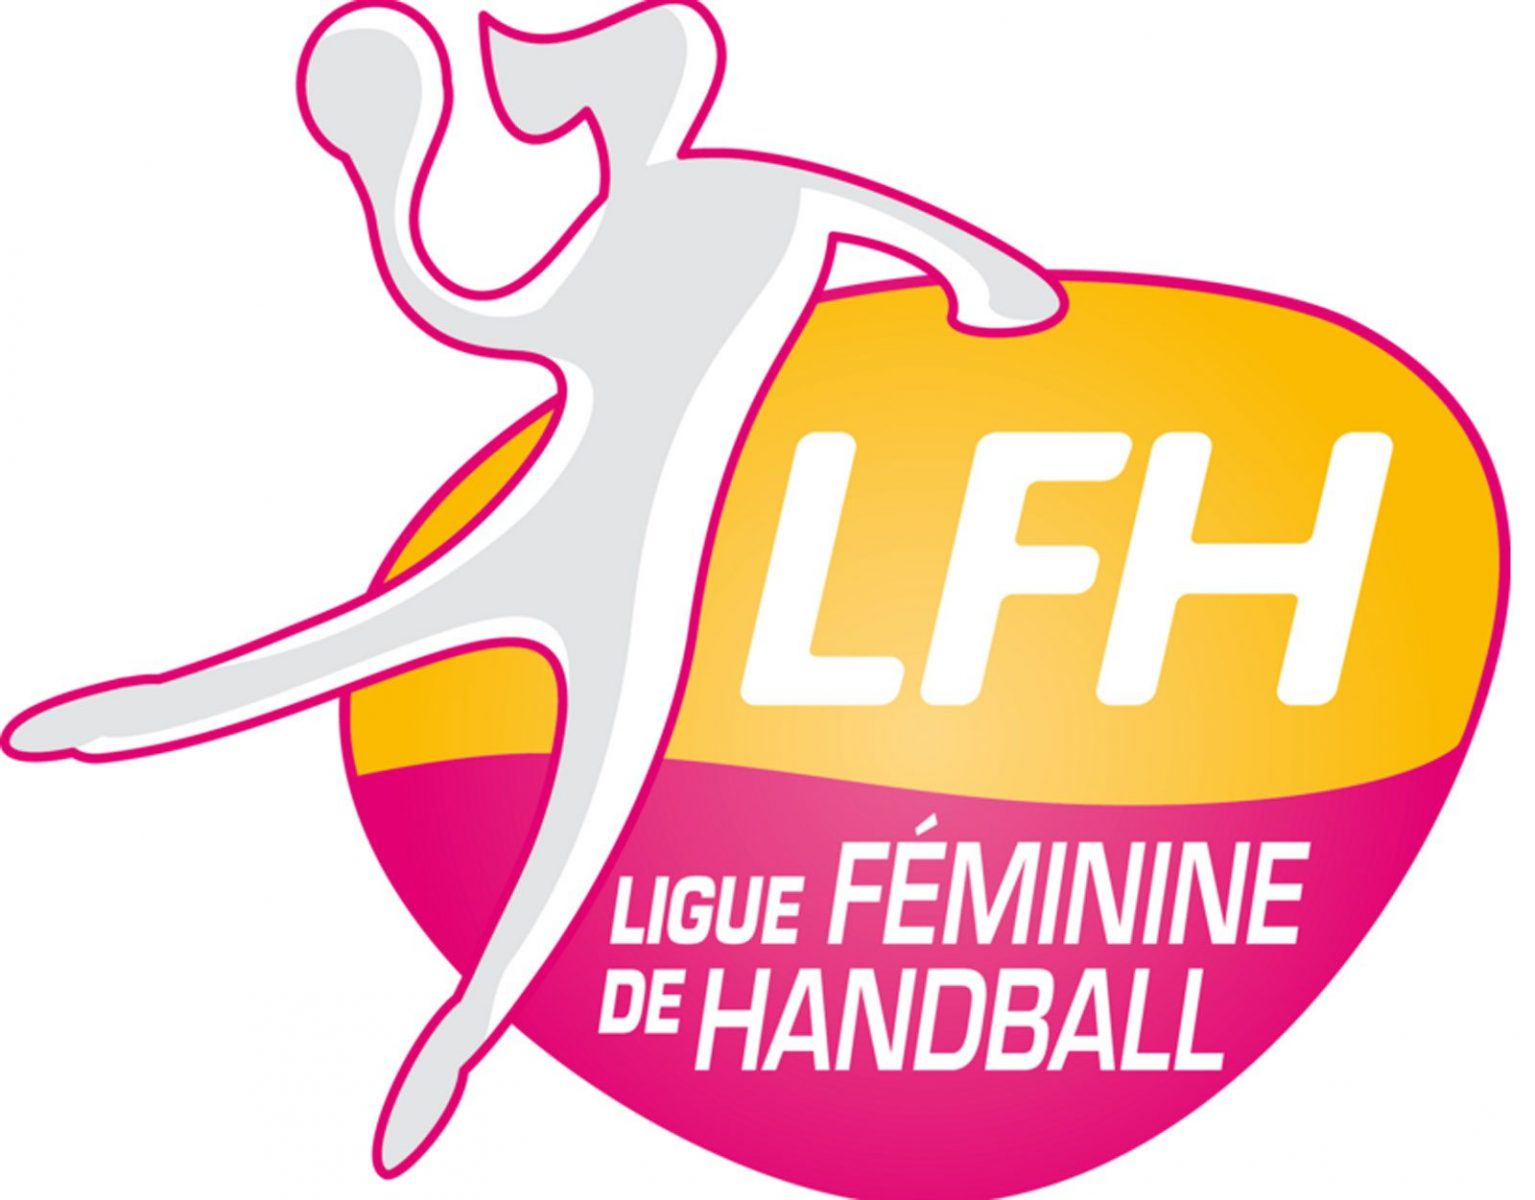 LFH : Metz Handball s'impose largement face à Issy Paris